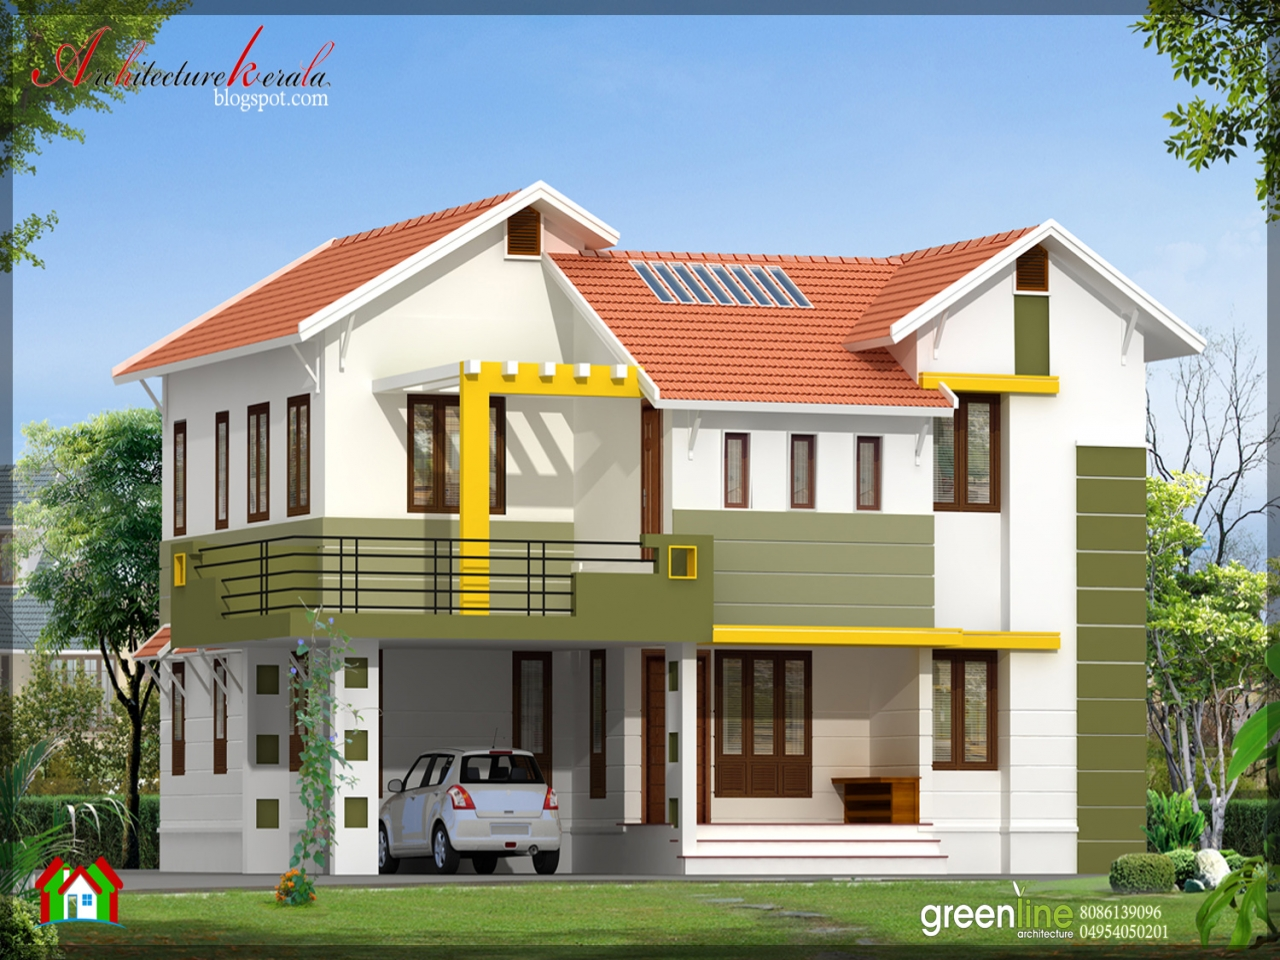 Simple modern house designs simple house design in india for Simple modern house ideas